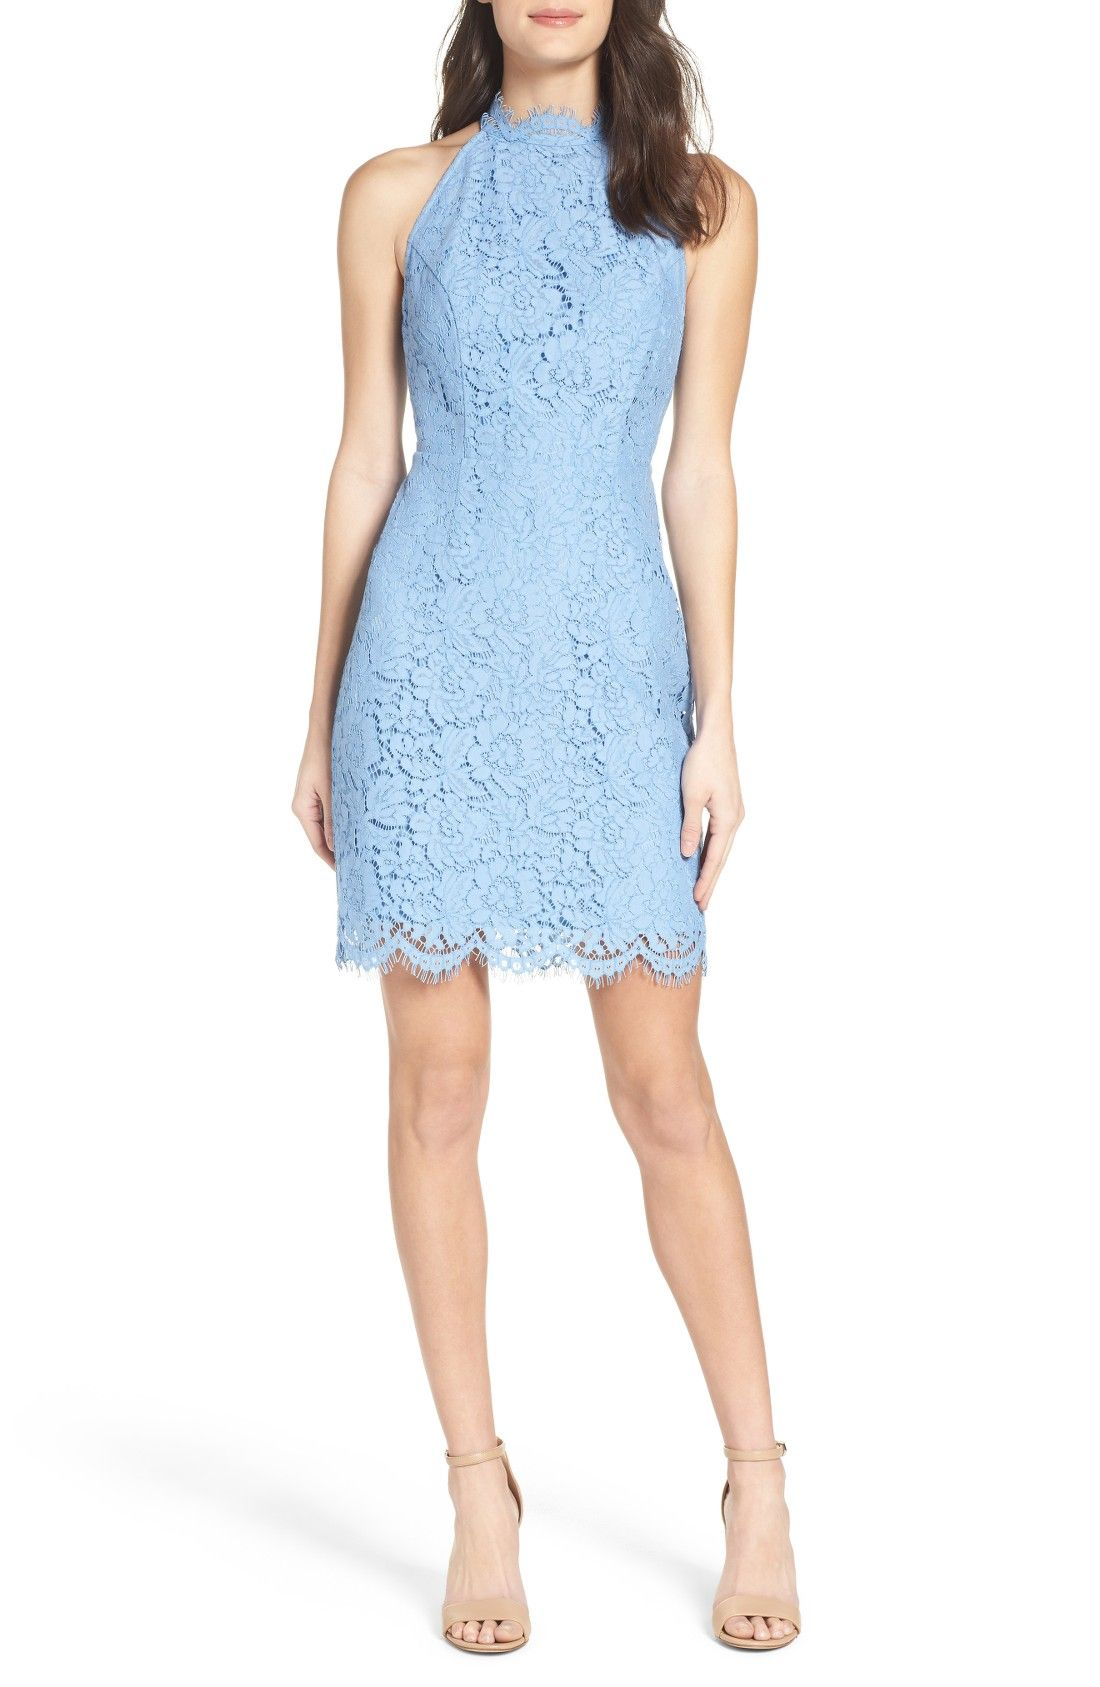 cadbf7869ad2 Light blue lace cocktail dress | 'Cara' High Neck Lace Dress | affiliate